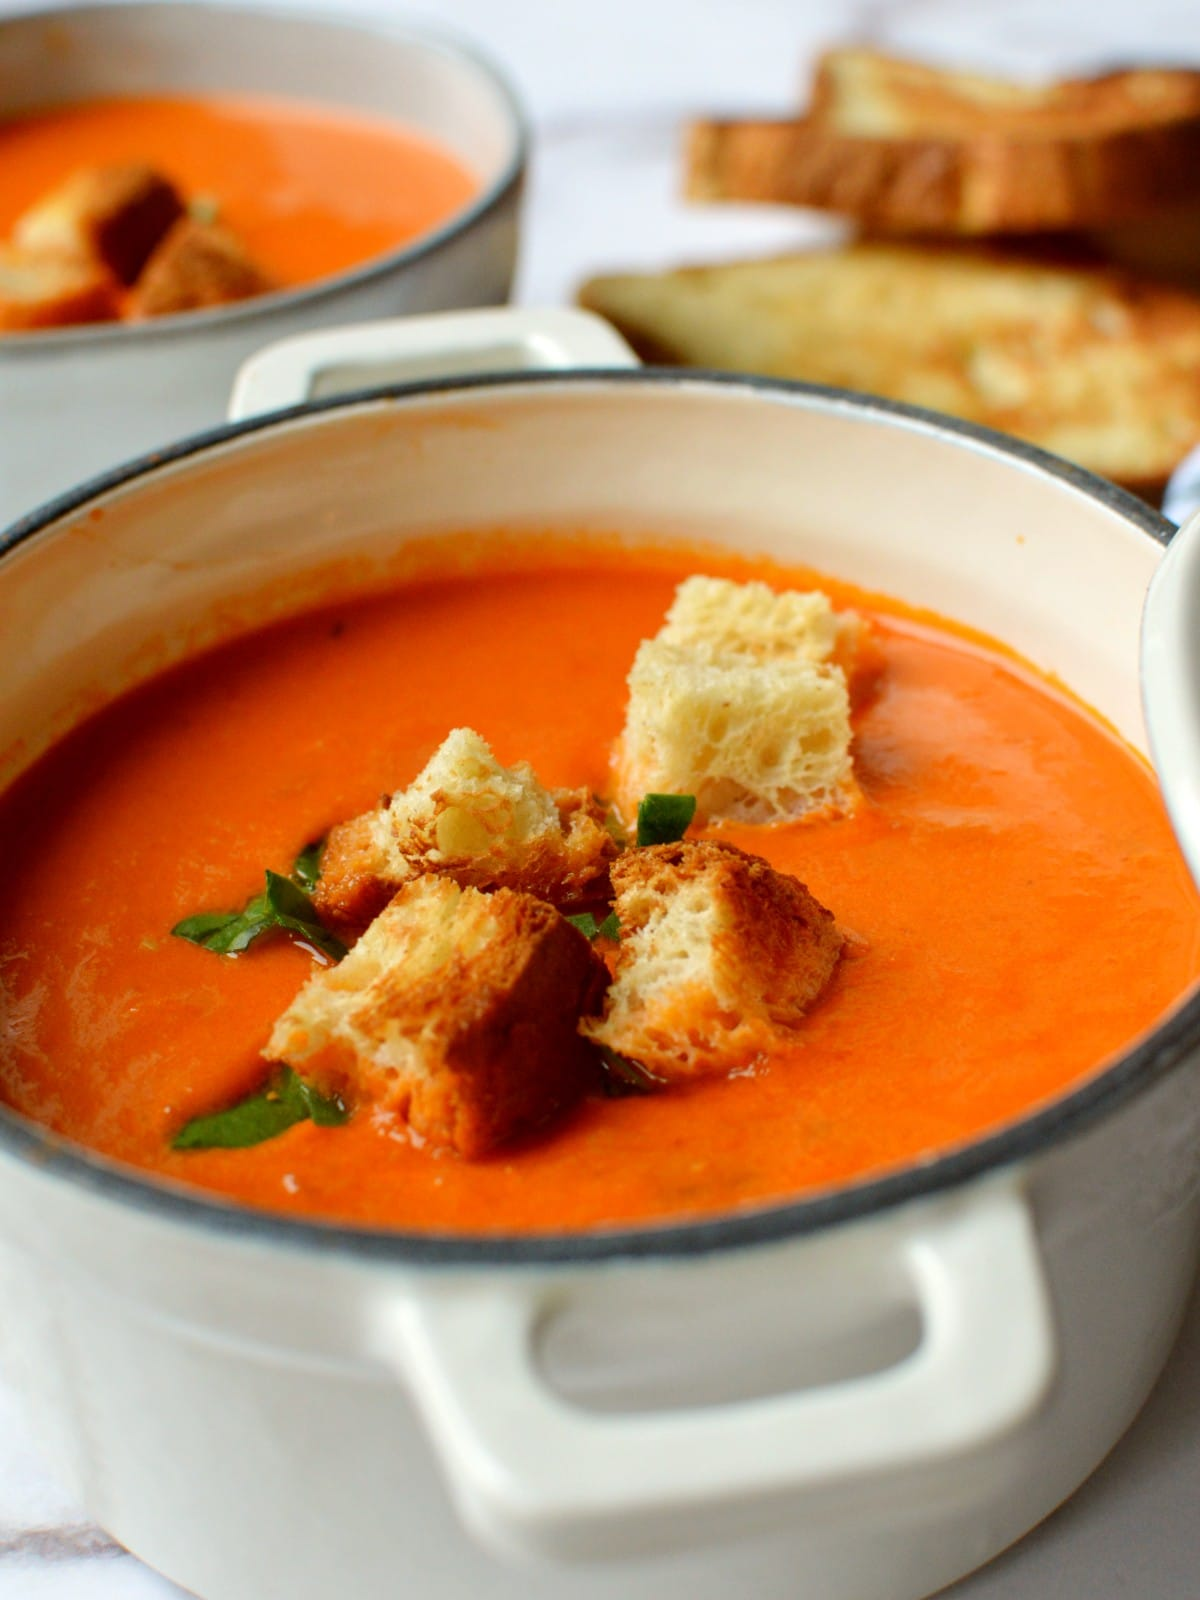 A close up of tomato soup